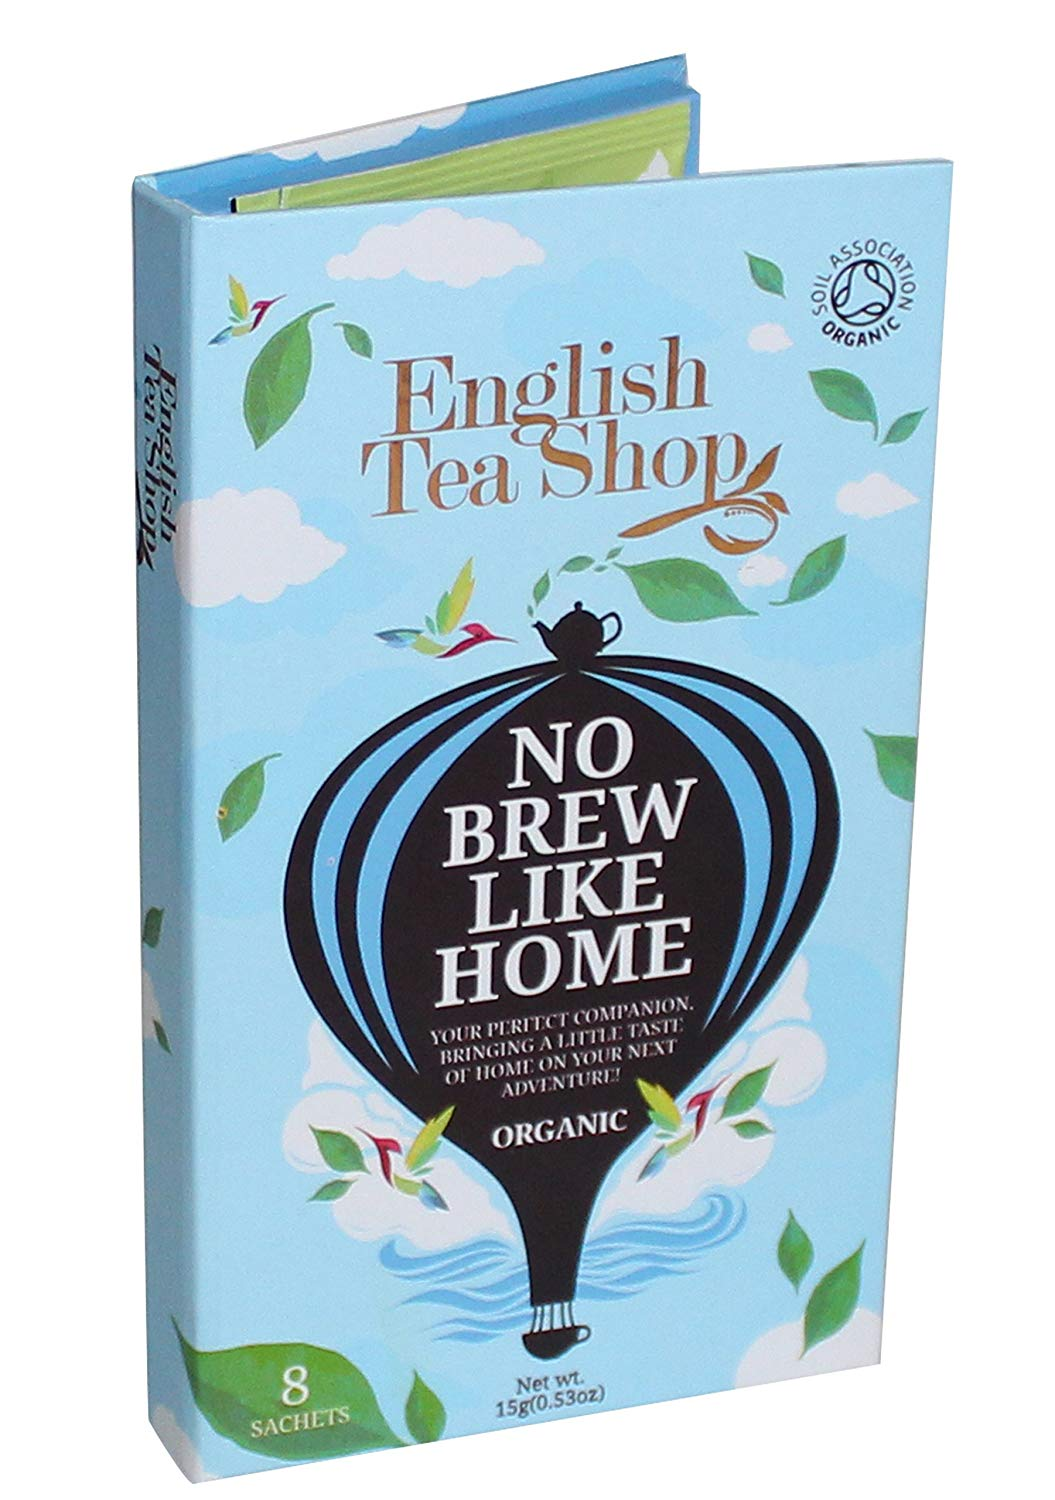 English Tea Shop Sachets Blue Traveller Pack 8tk